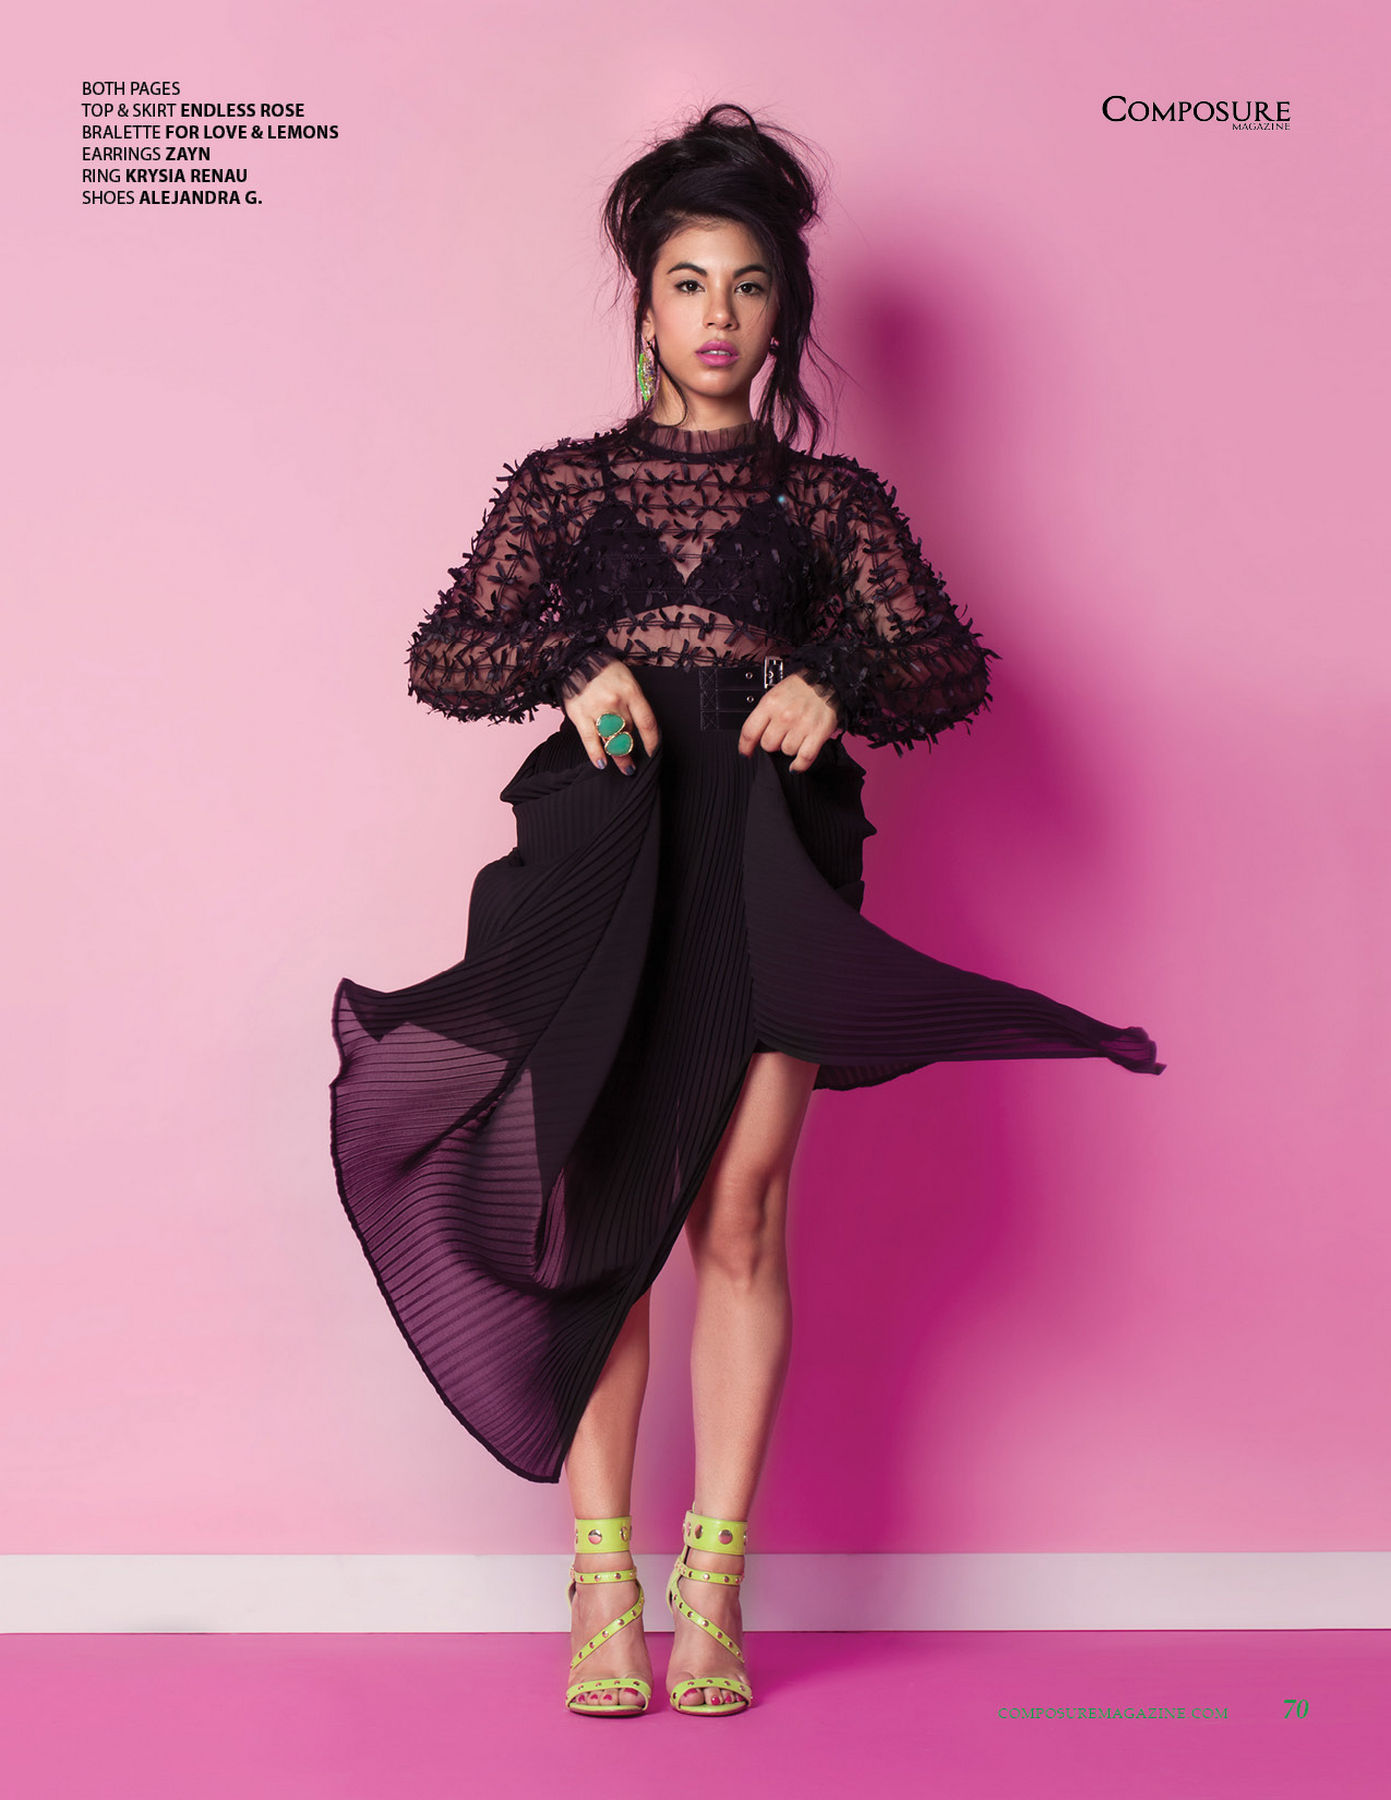 Chrissie Fit - ComposureMagazine